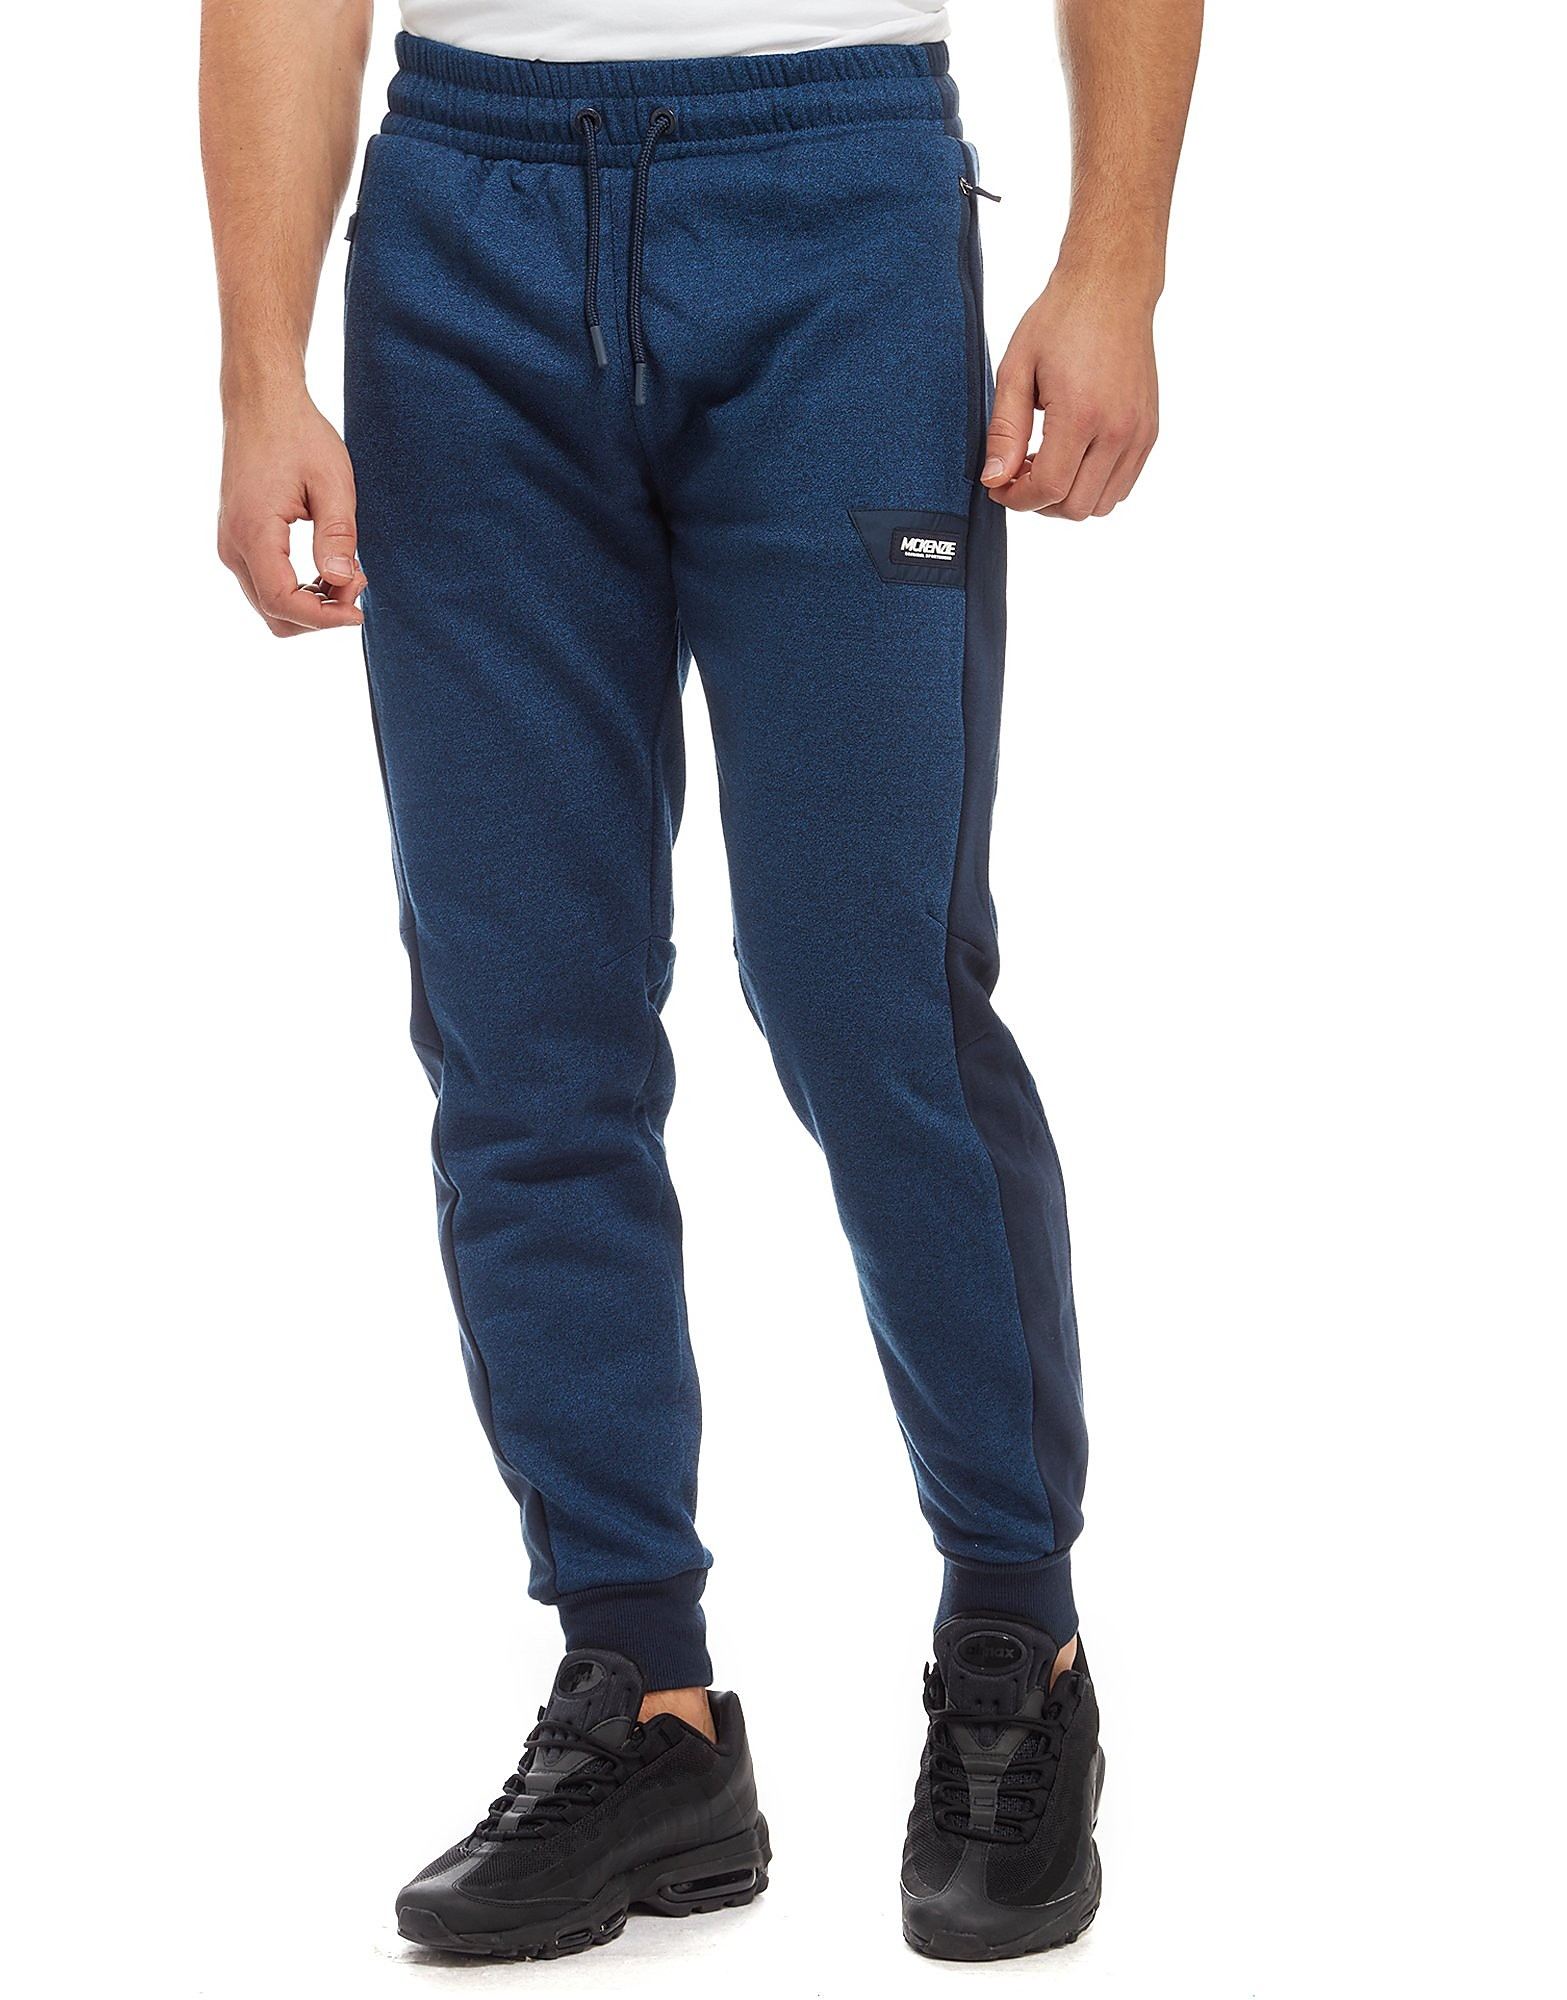 McKenzie Maat Joggers - Only at JD - Navy, Navy